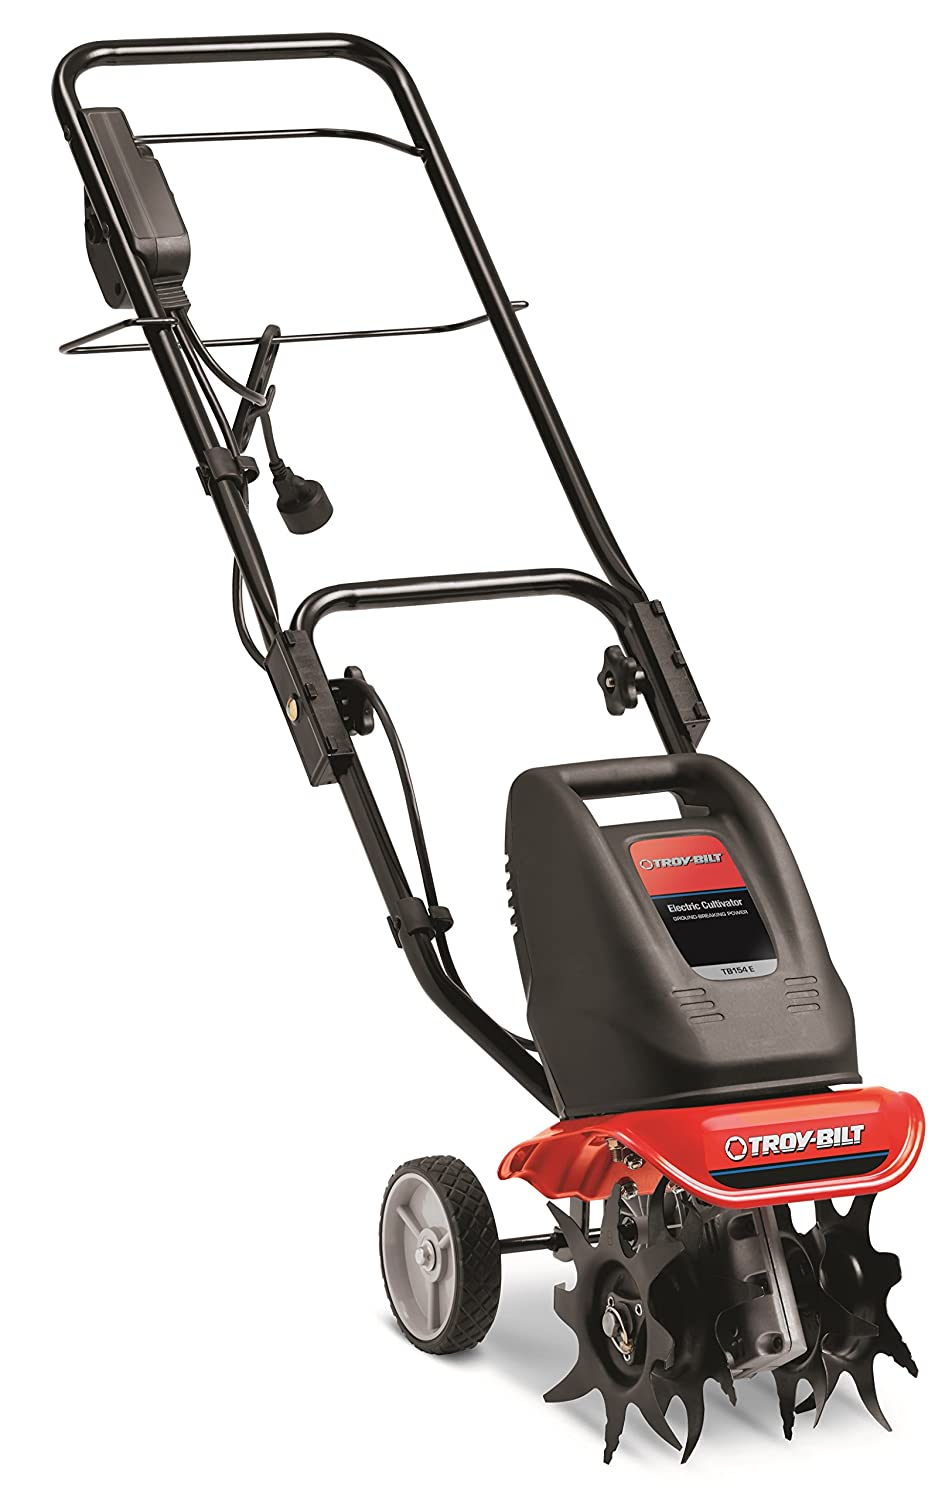 electric garden tiller. Amazon.com : Troy-Bilt TB154E 6 Amp Electric Garden Cultivator Power Tillers \u0026 Outdoor Tiller